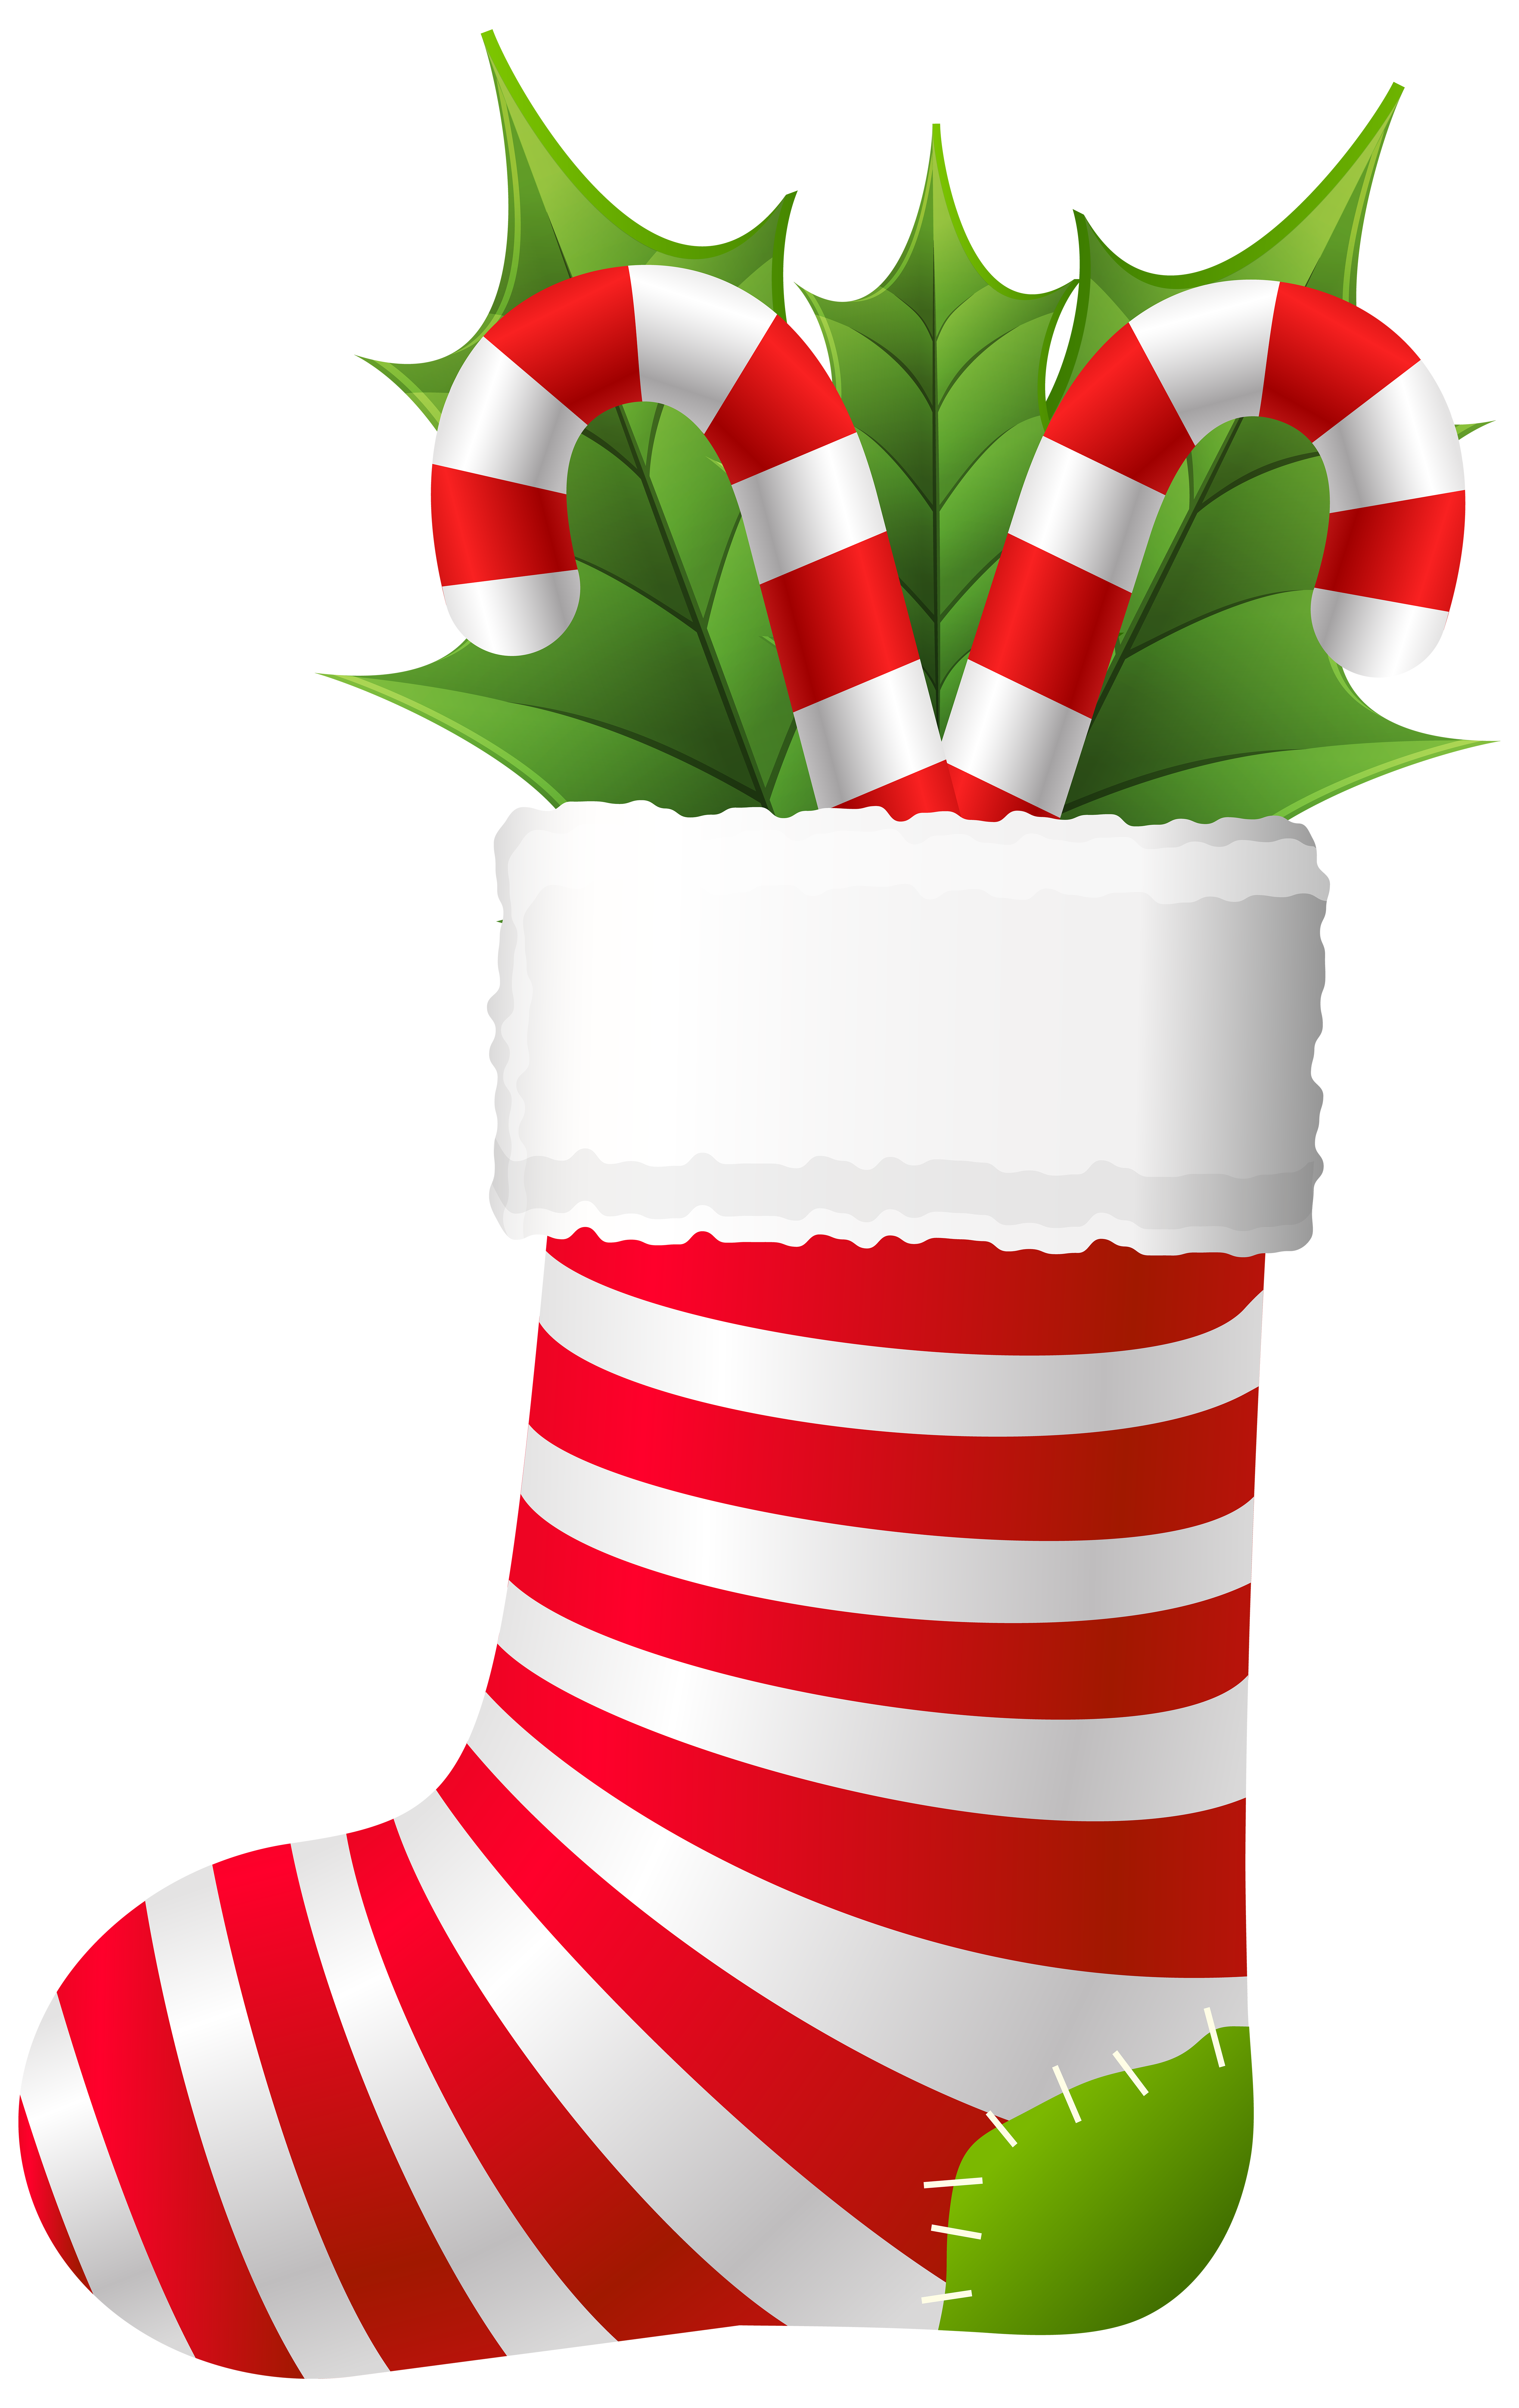 Christmas Clipart Stocking   Free download on ClipArtMag